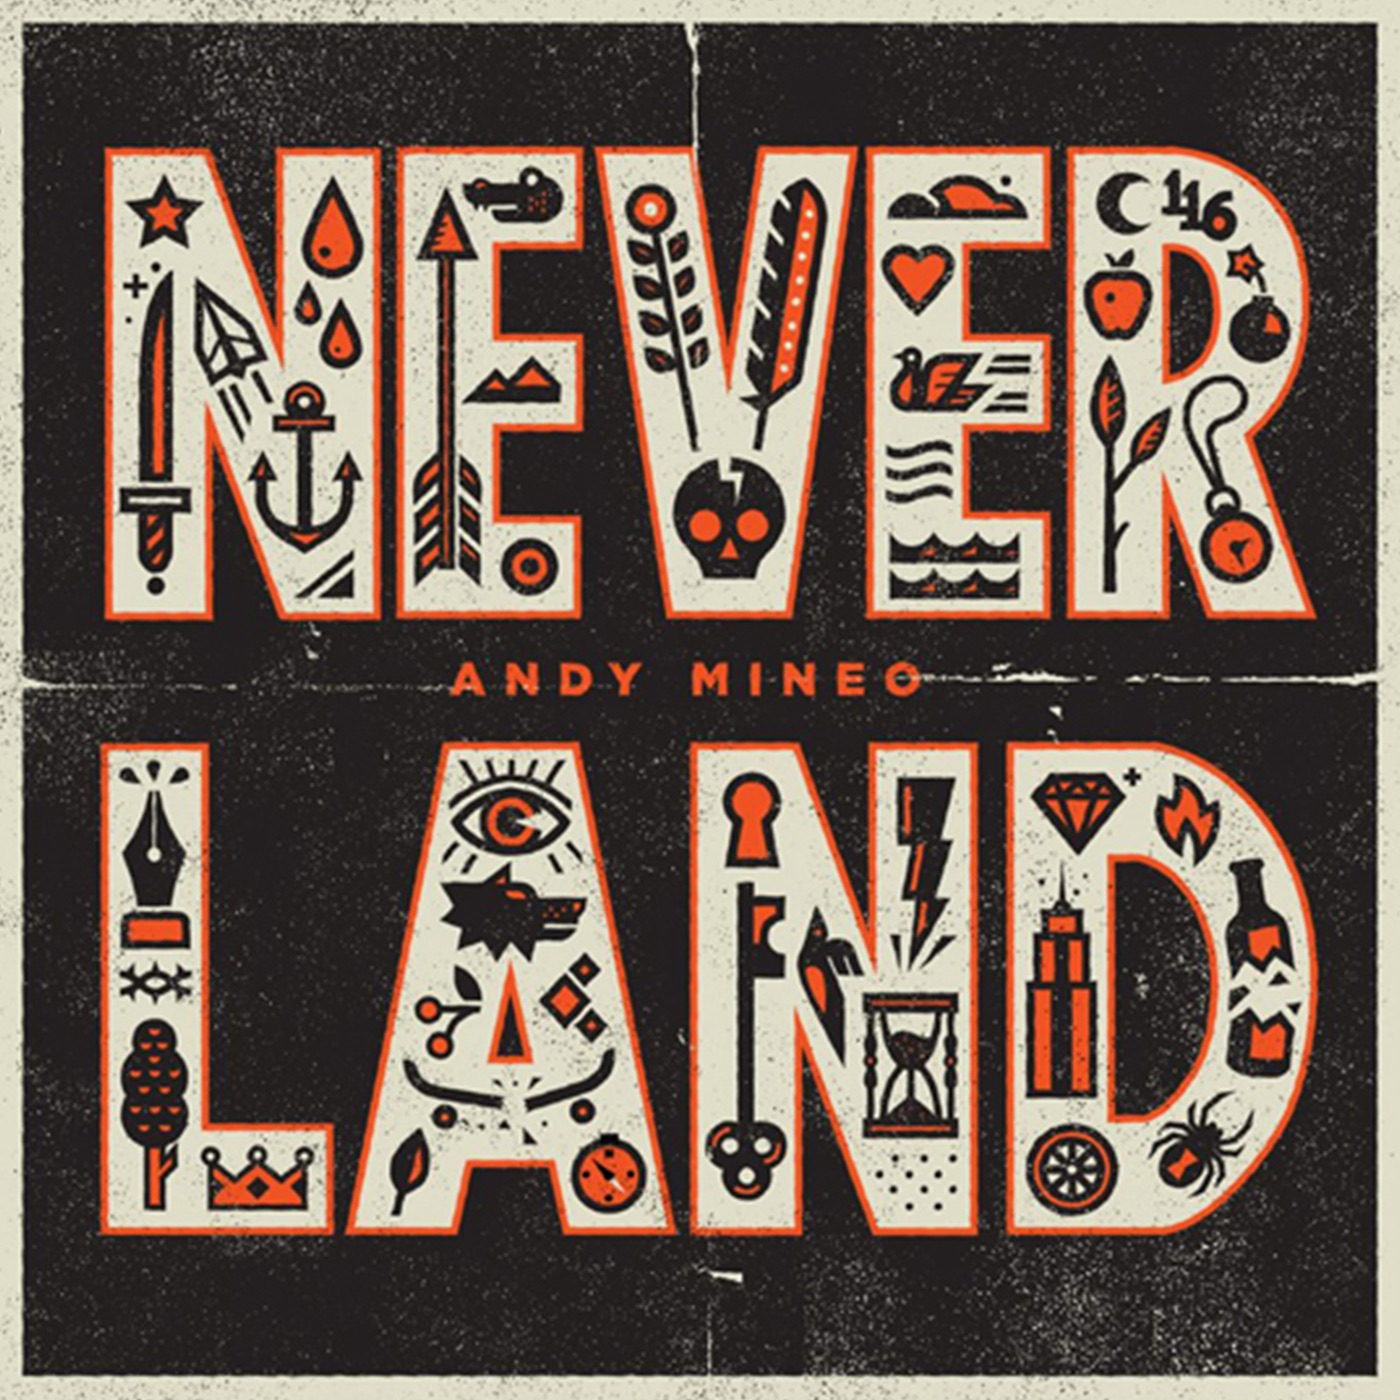 You Can't Stop Me by Andy Mineo